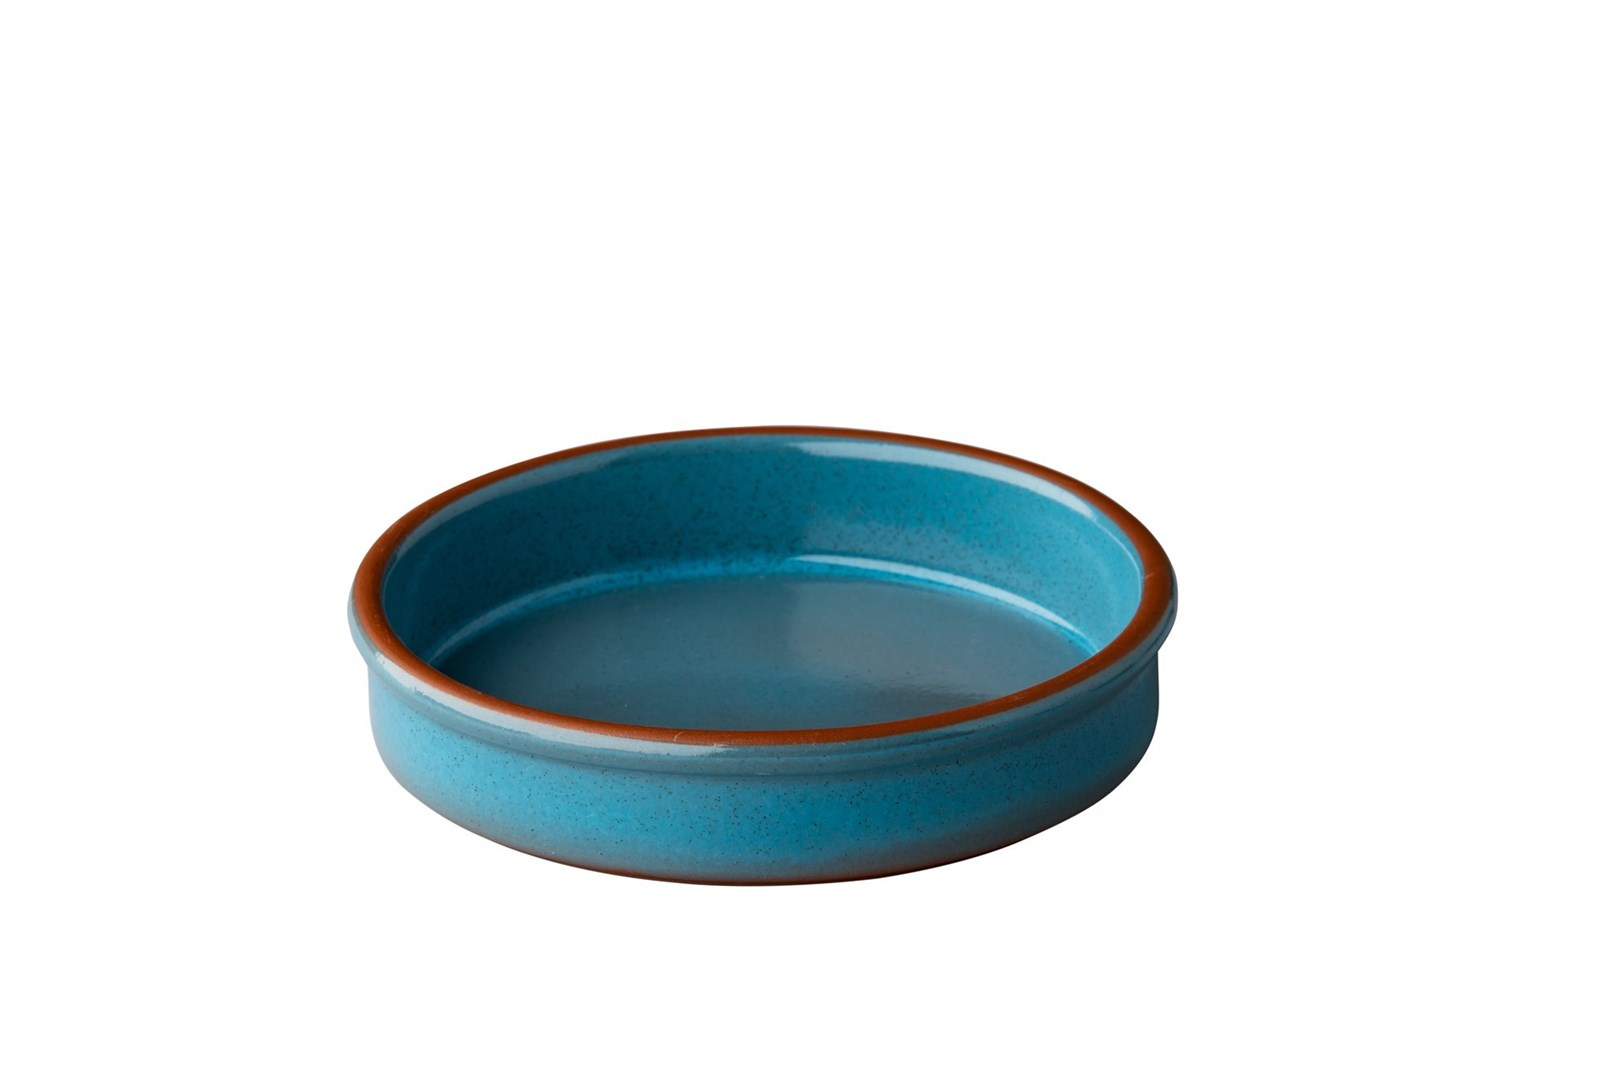 Productafbeelding Stoneheart casserole 17 cm blauw